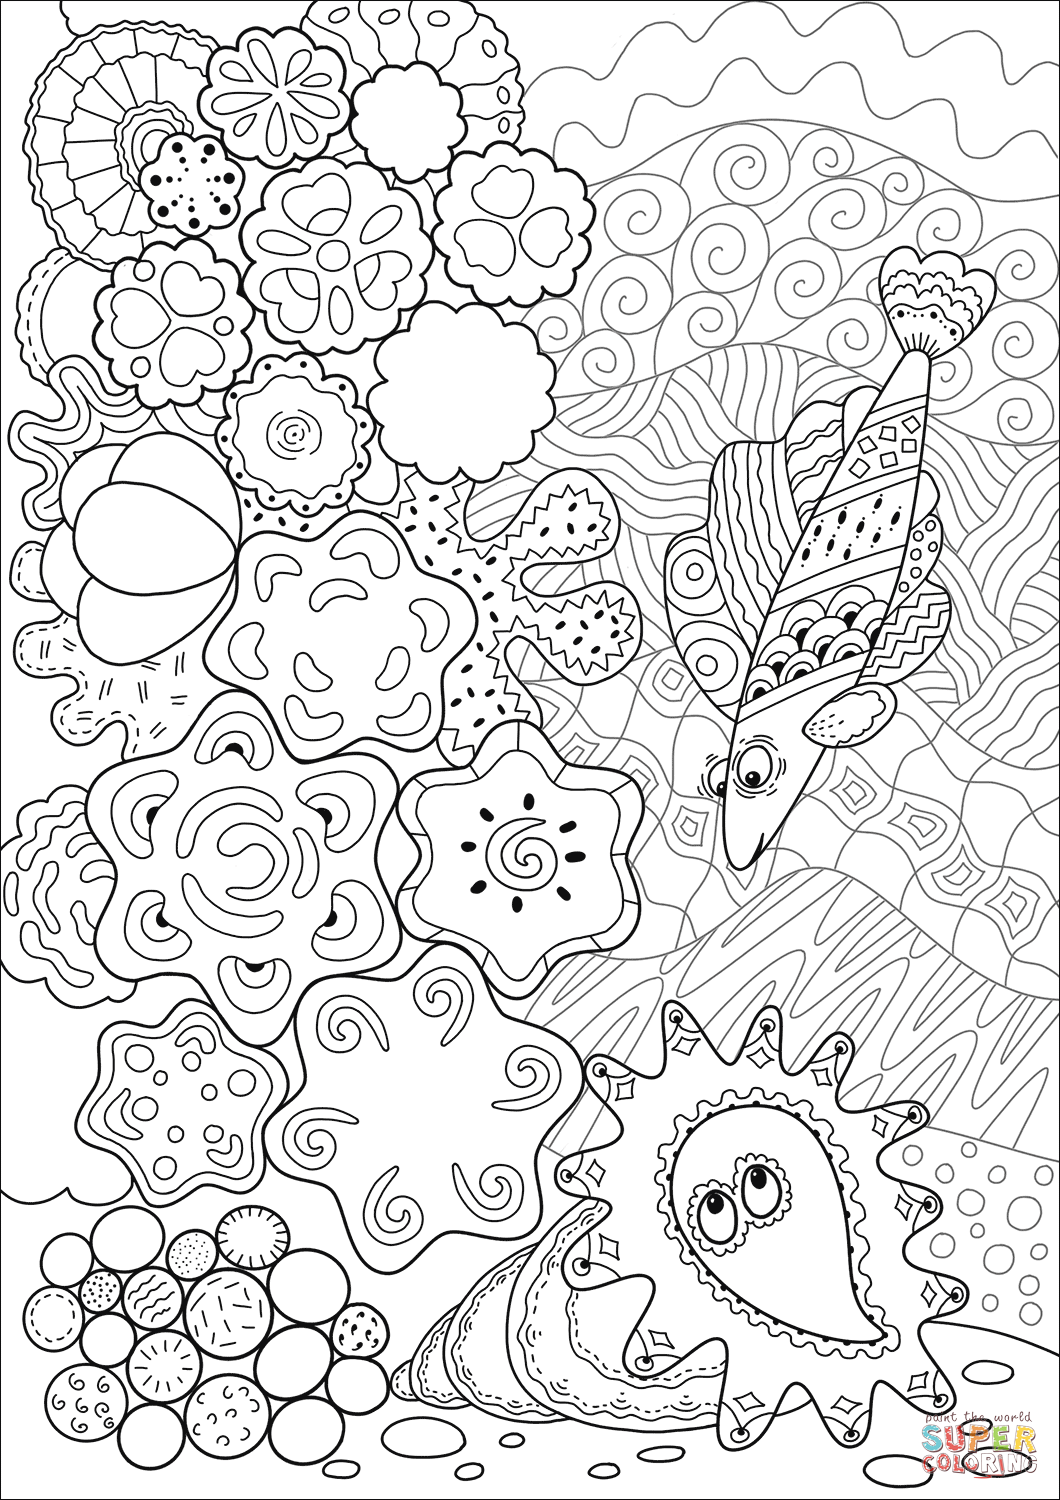 Grouper Found A Sea Shell In Coral Reef Coloring Page